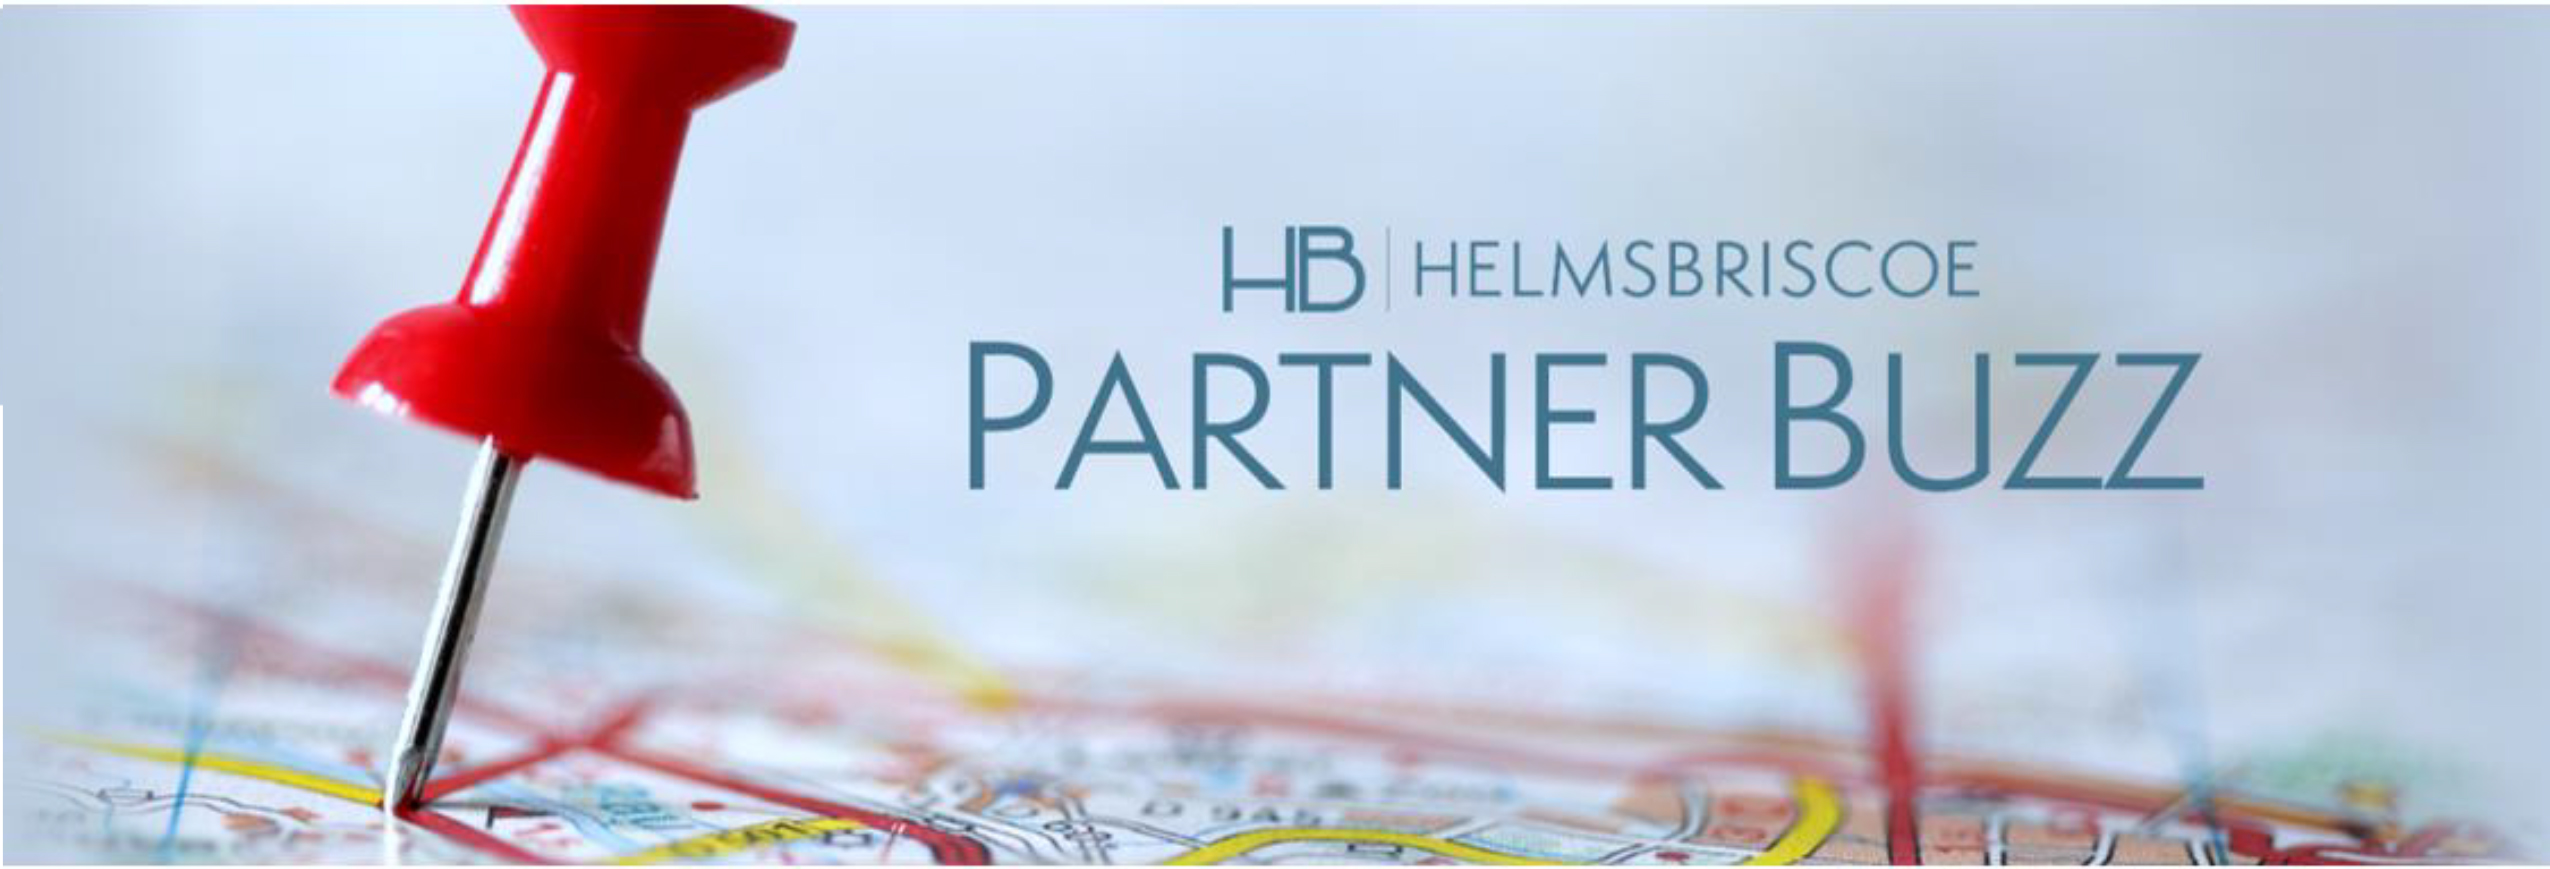 Helmsbriscoe Partner Buzz header